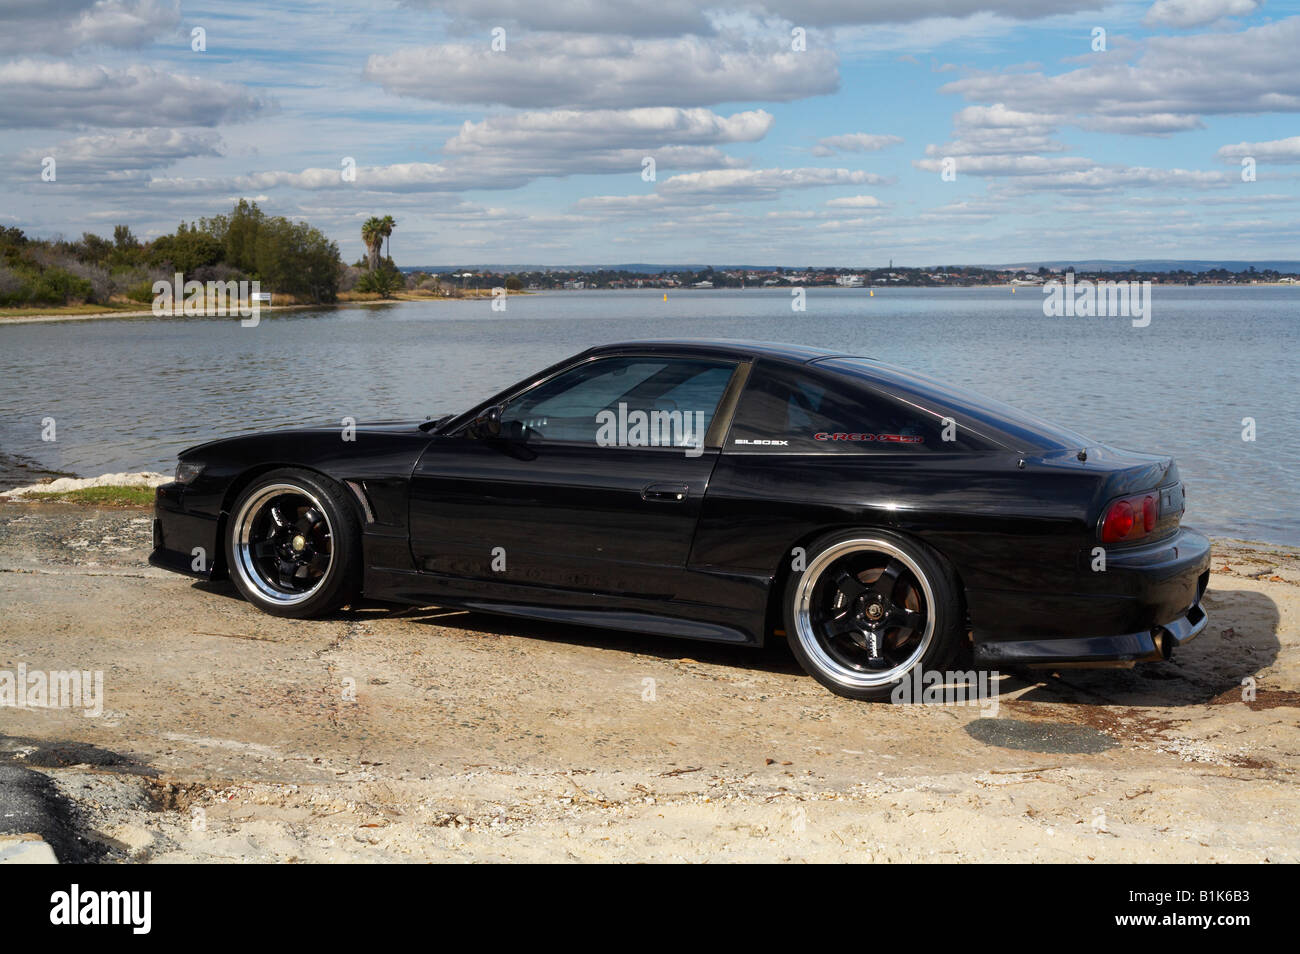 Nissan S13 Japanese Sports Car Modified In The Australian Import Style,  Otherwise Known As Being